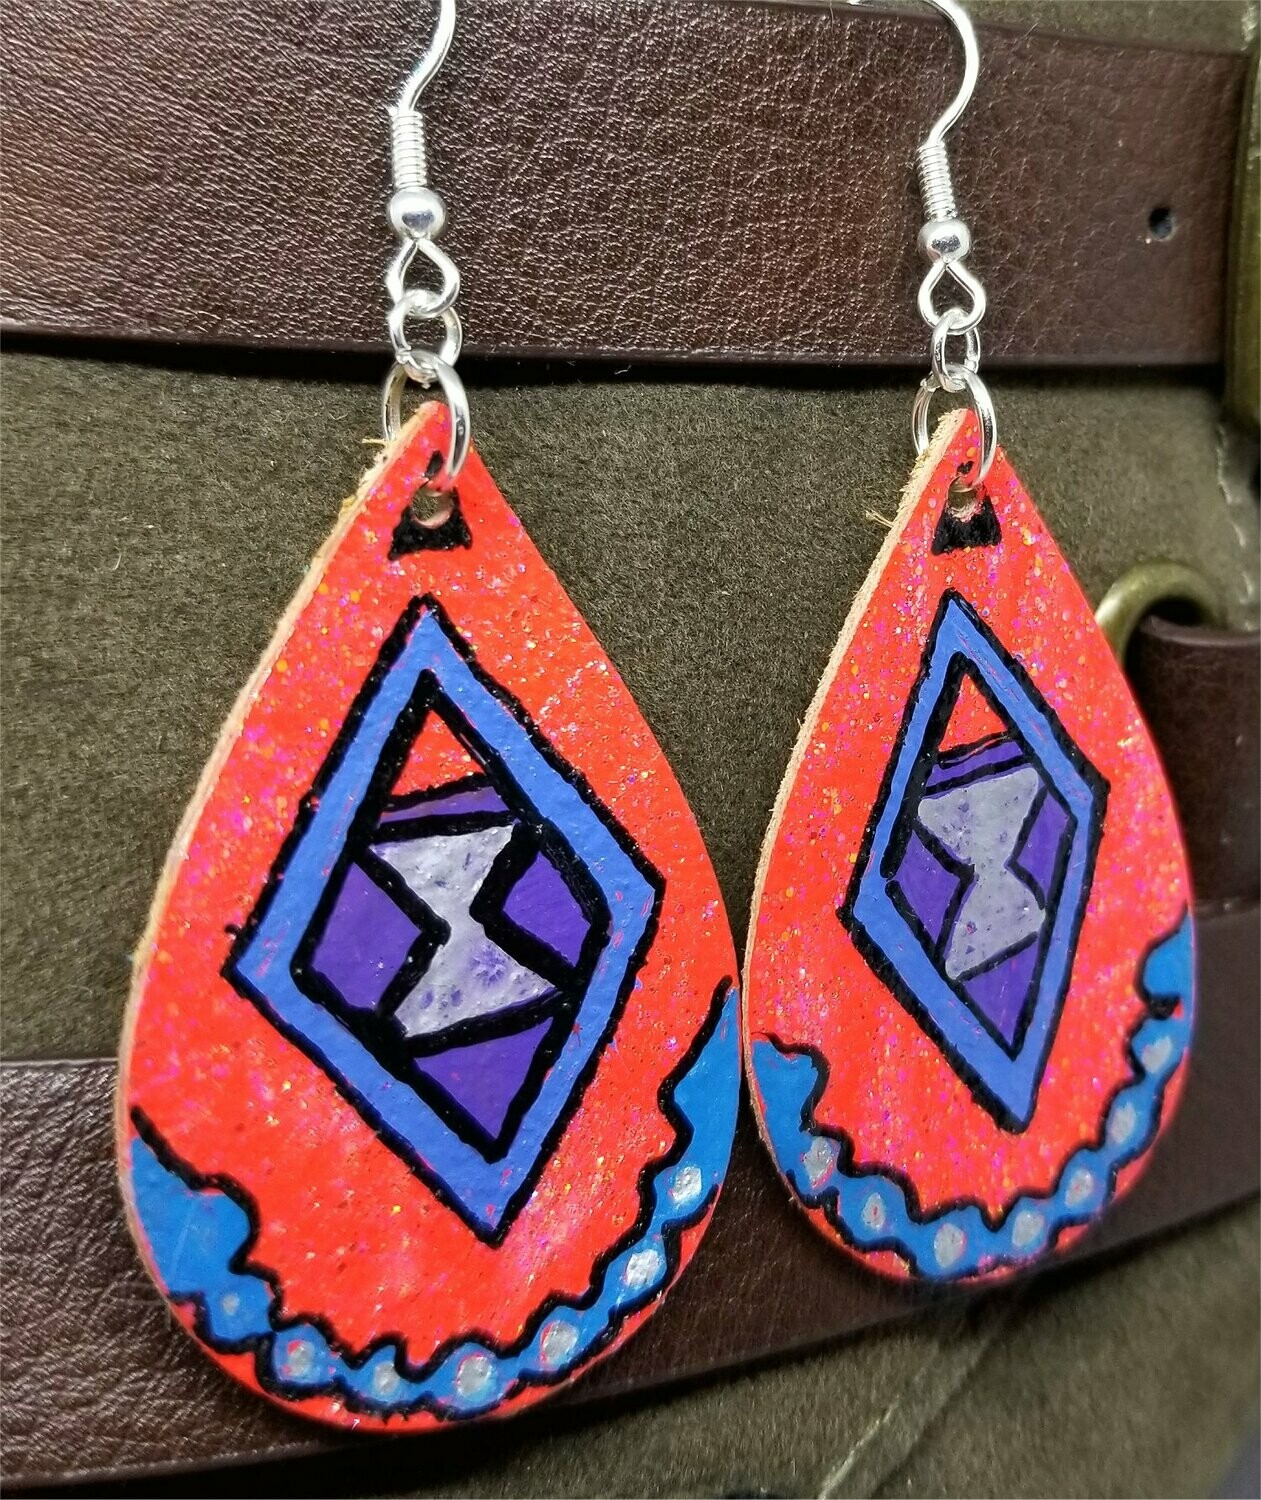 Hand Painted Southwestern or Aztec Design on Real Leather Teardrop Earrings